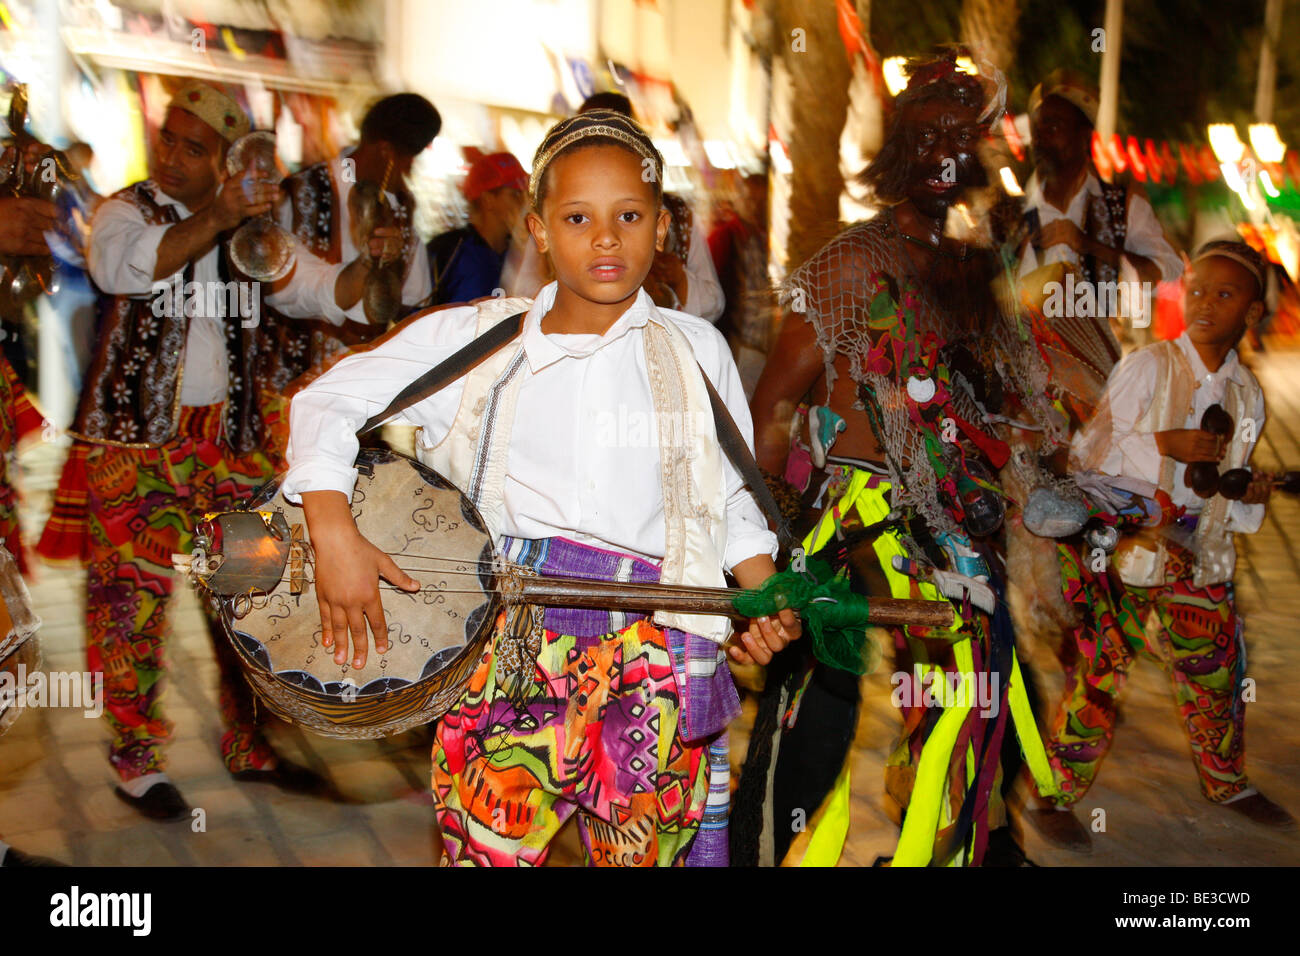 Boy with Gimbri, stringed percussion instrument, Sufi brotherhood, religious ceremony, Hammamet, Tunisia, Northern - Stock Image